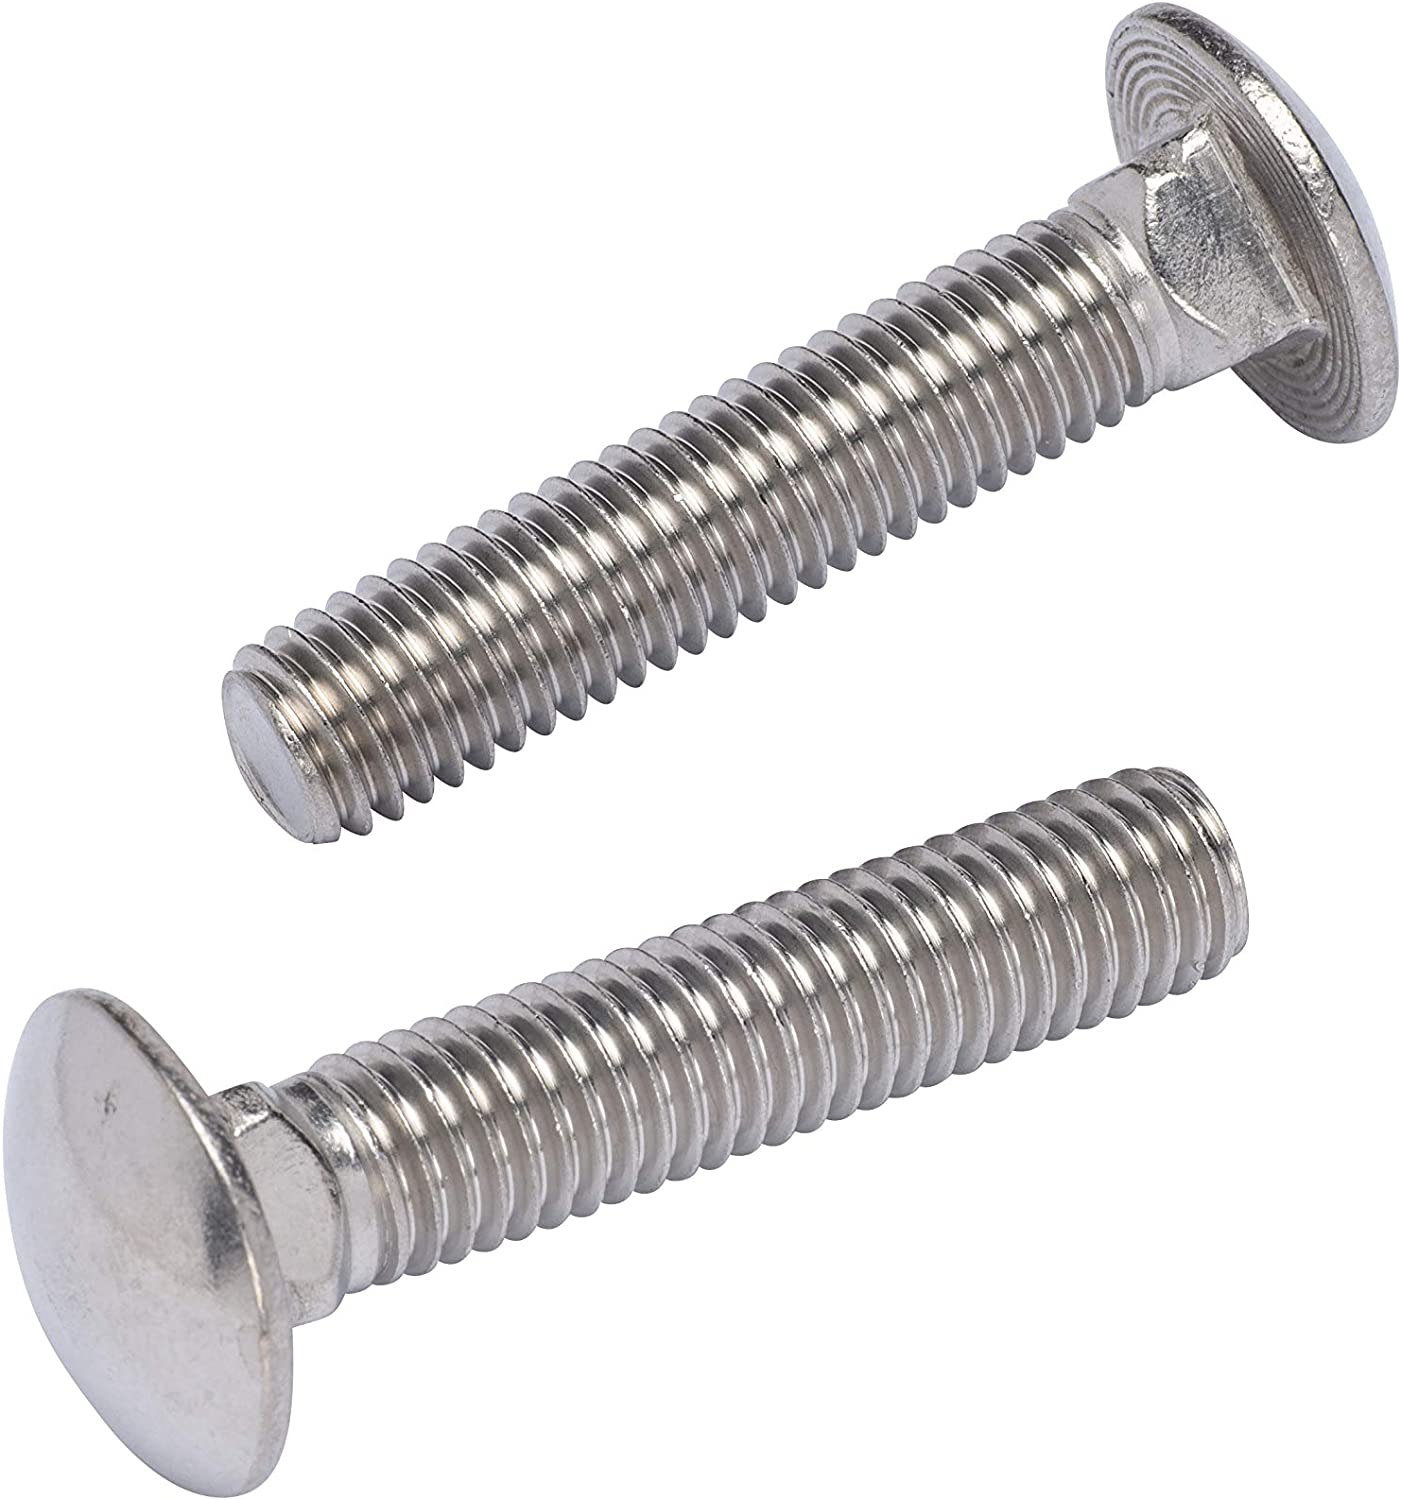 1//2-13 x 1-1//4 Stainless Steel Carriage Bolts Grade 18-8 Qty 50